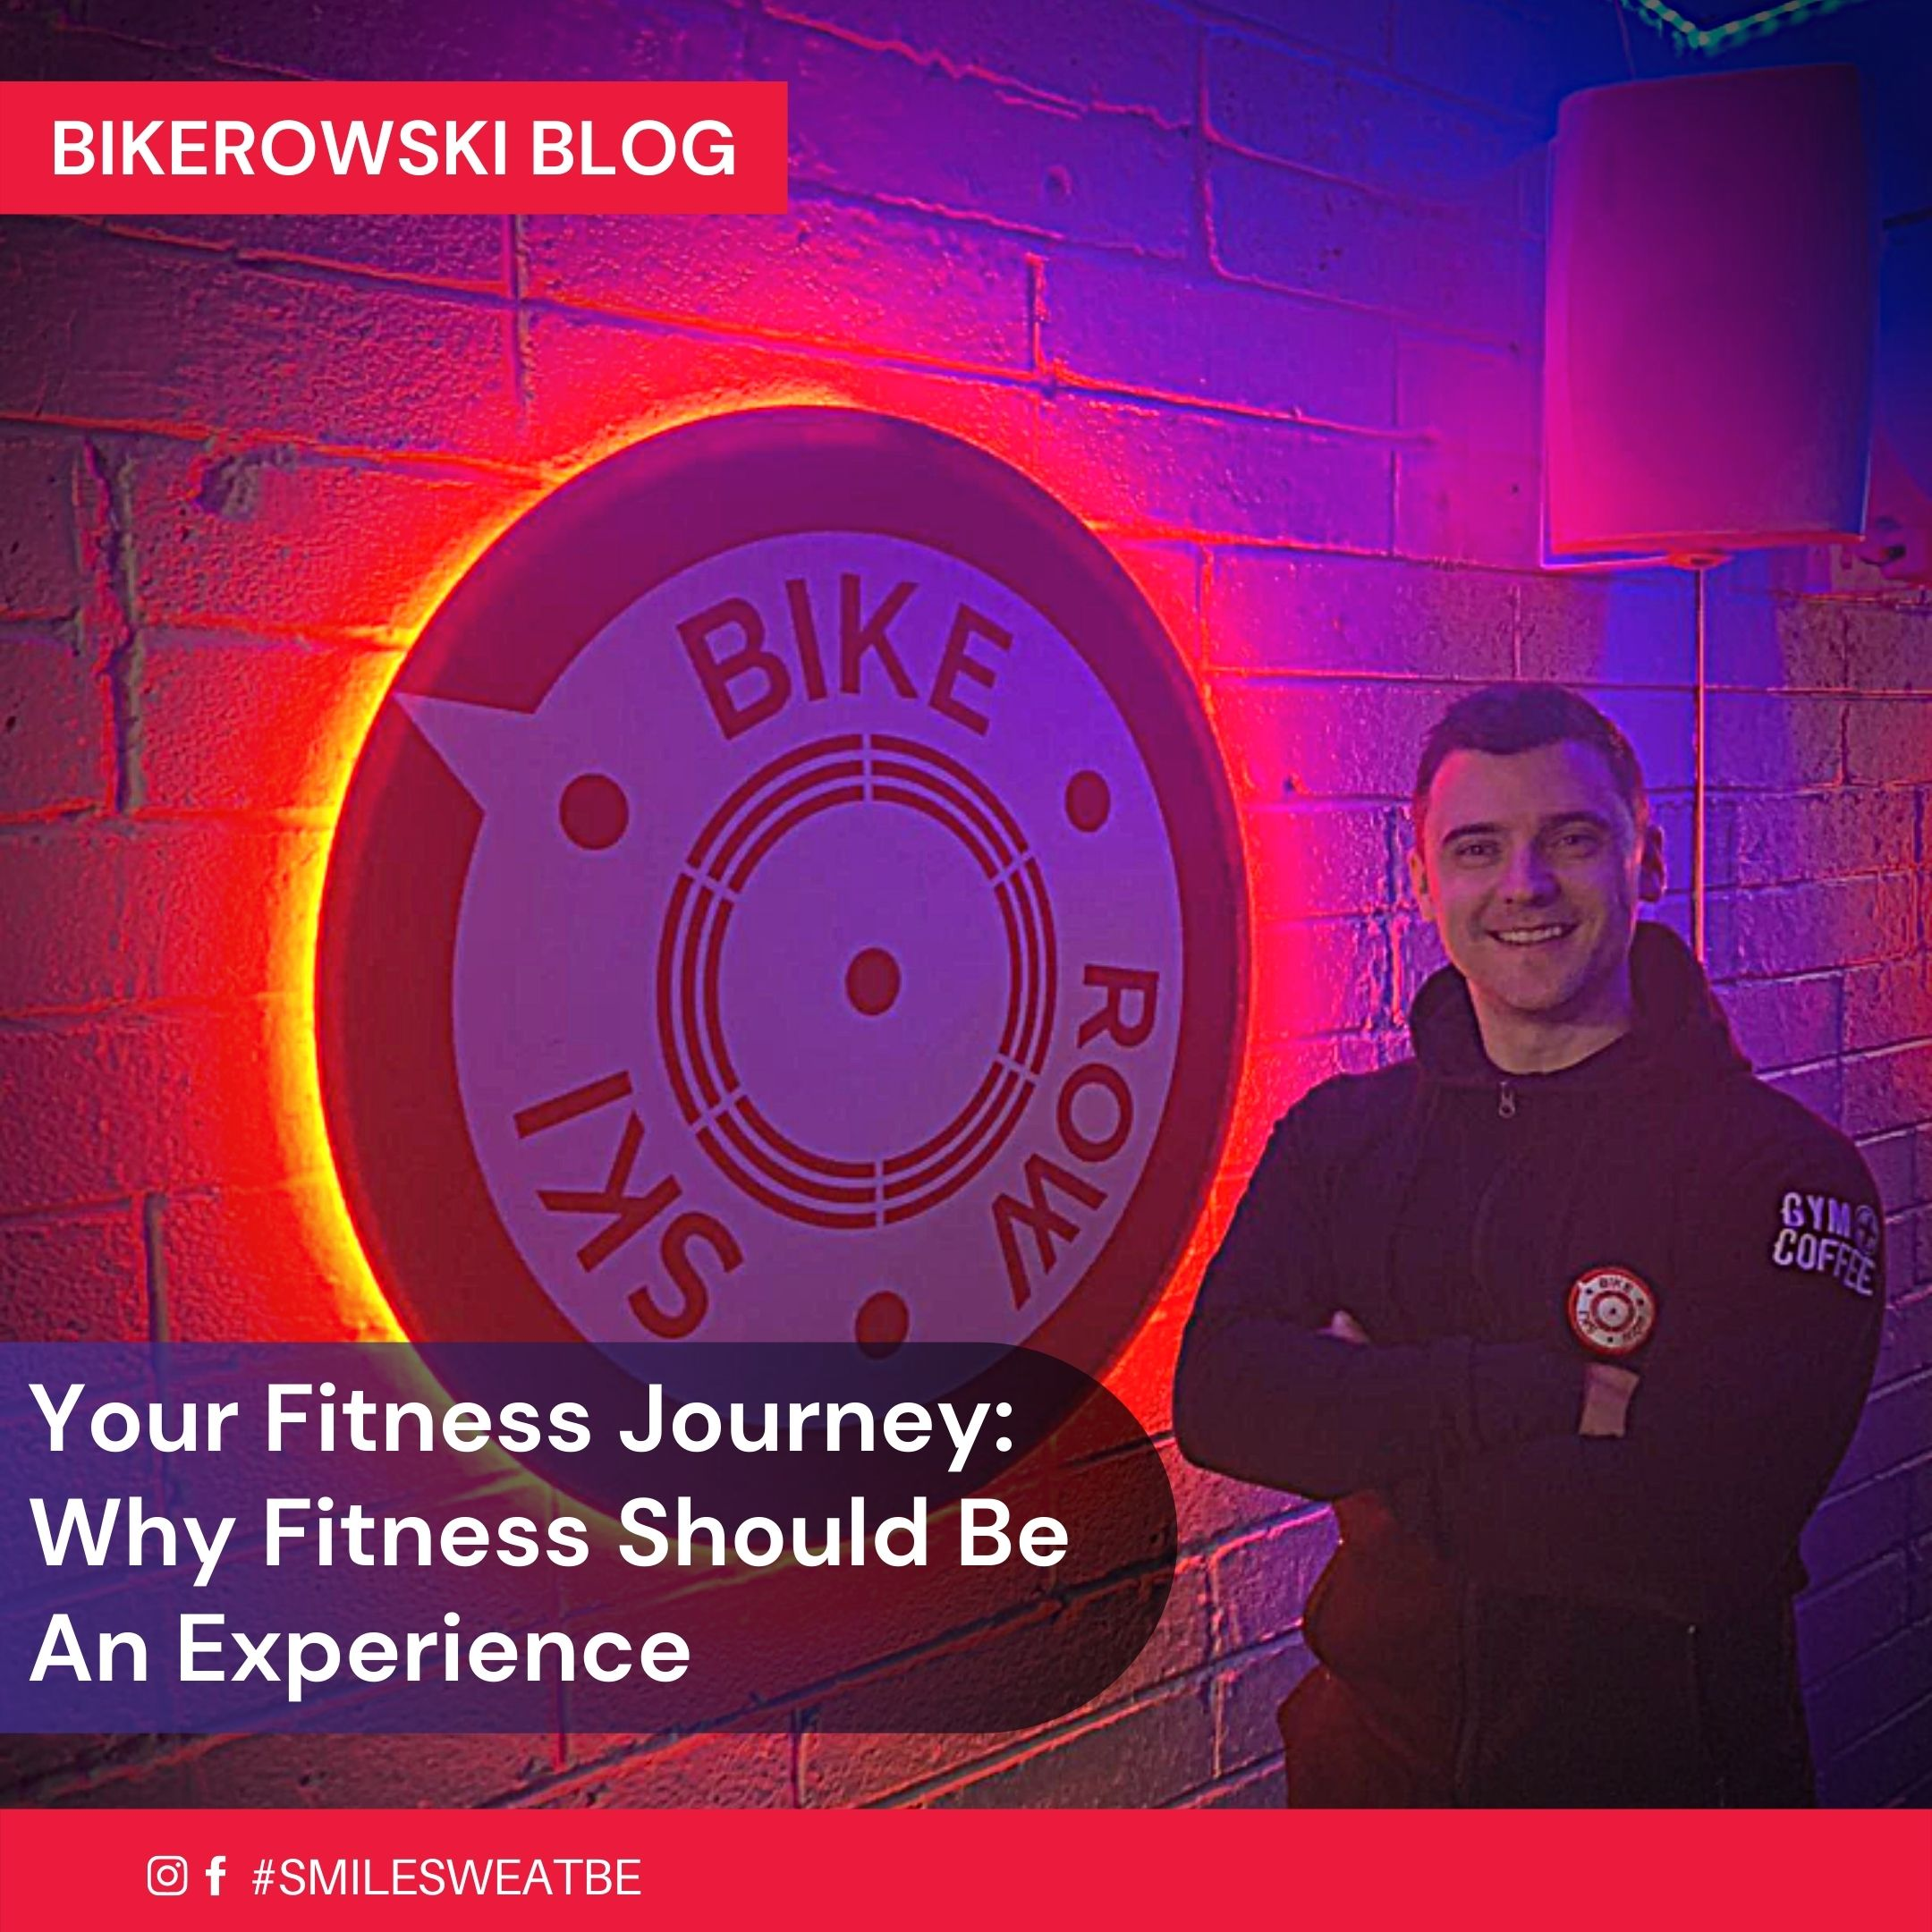 Your Fitness Journey: Why Fitness Should Be An Experience